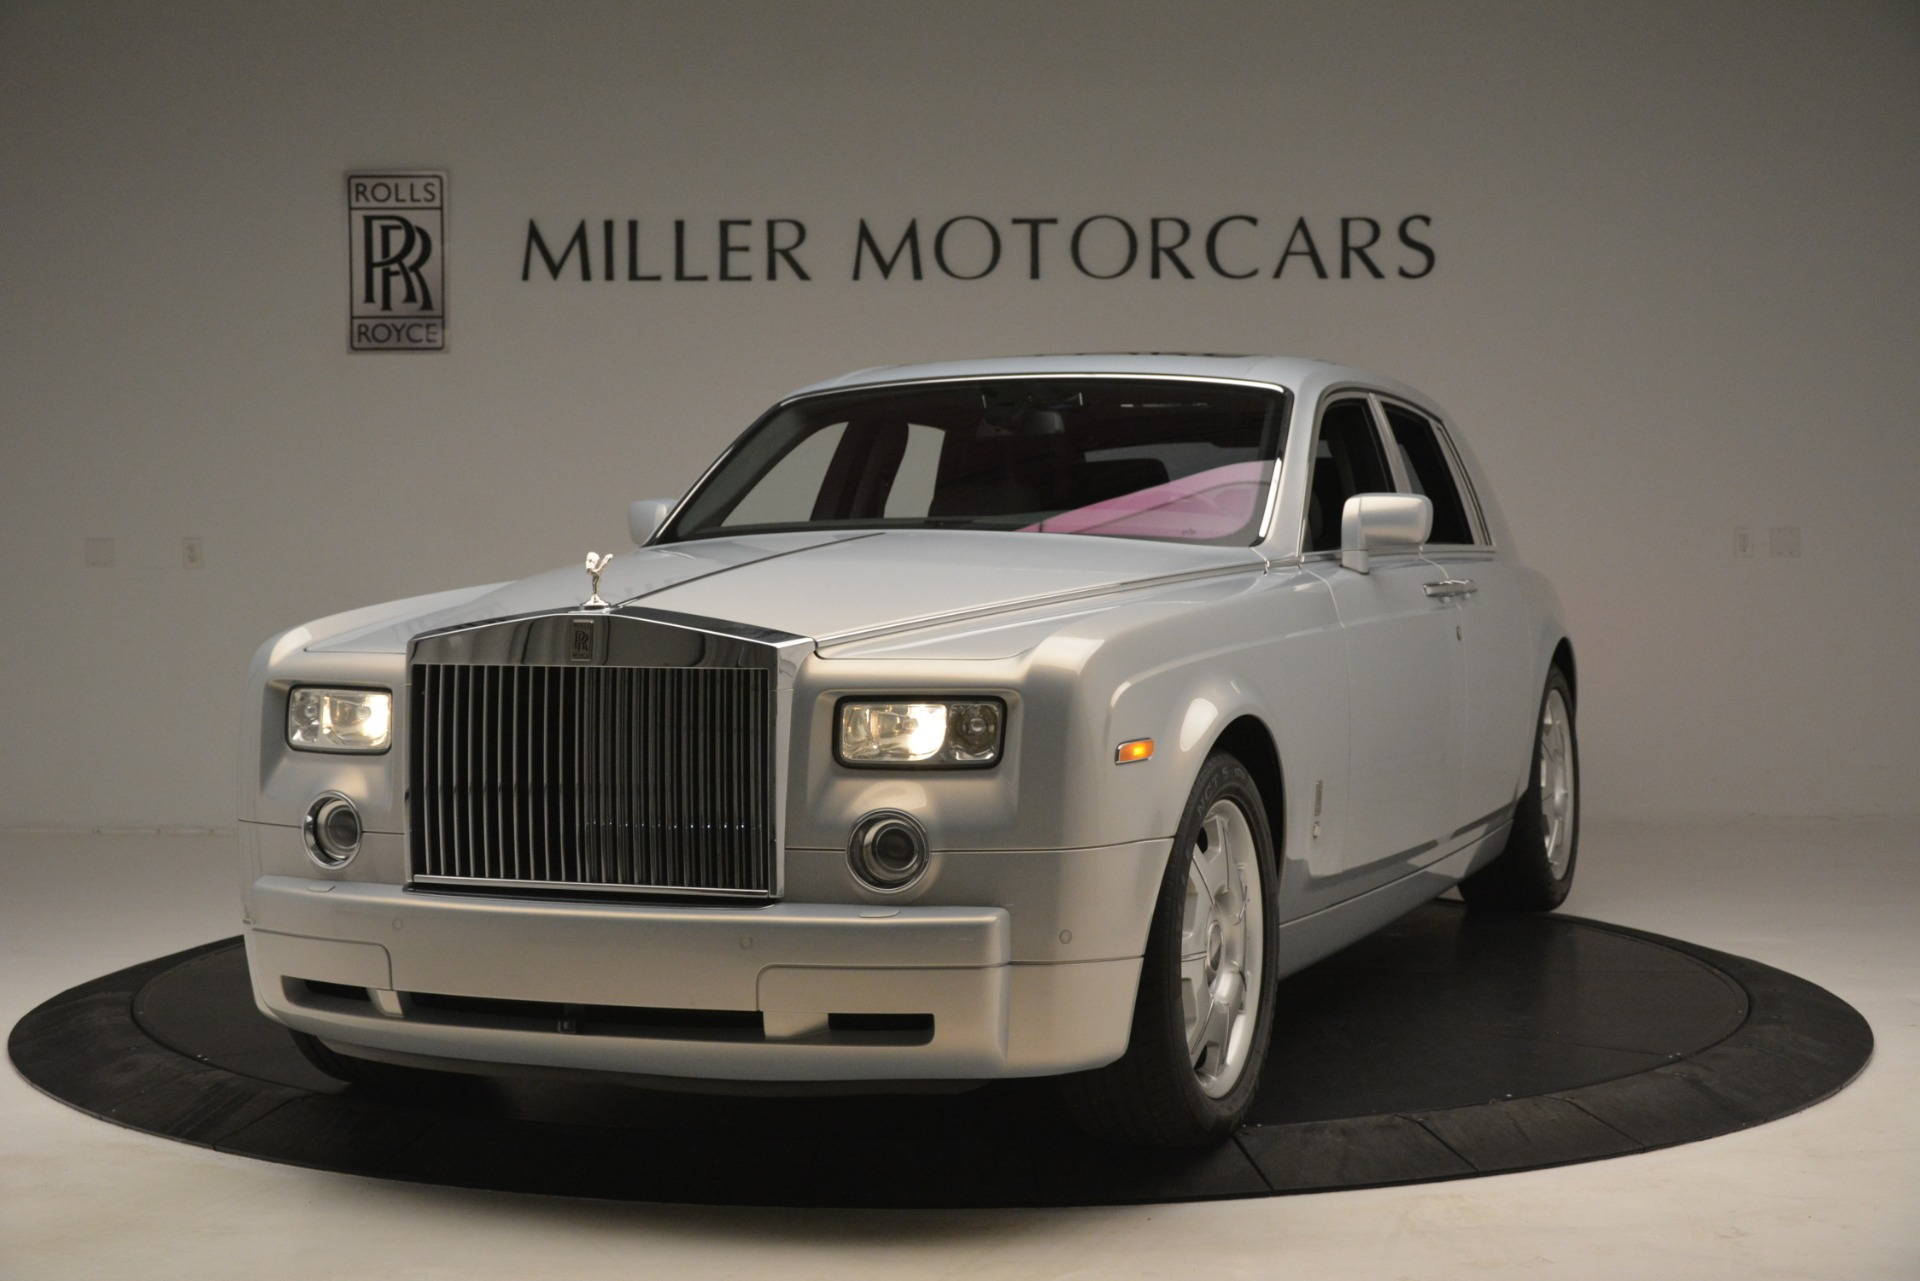 Used 2007 Rolls-Royce Phantom for sale Sold at McLaren Greenwich in Greenwich CT 06830 1